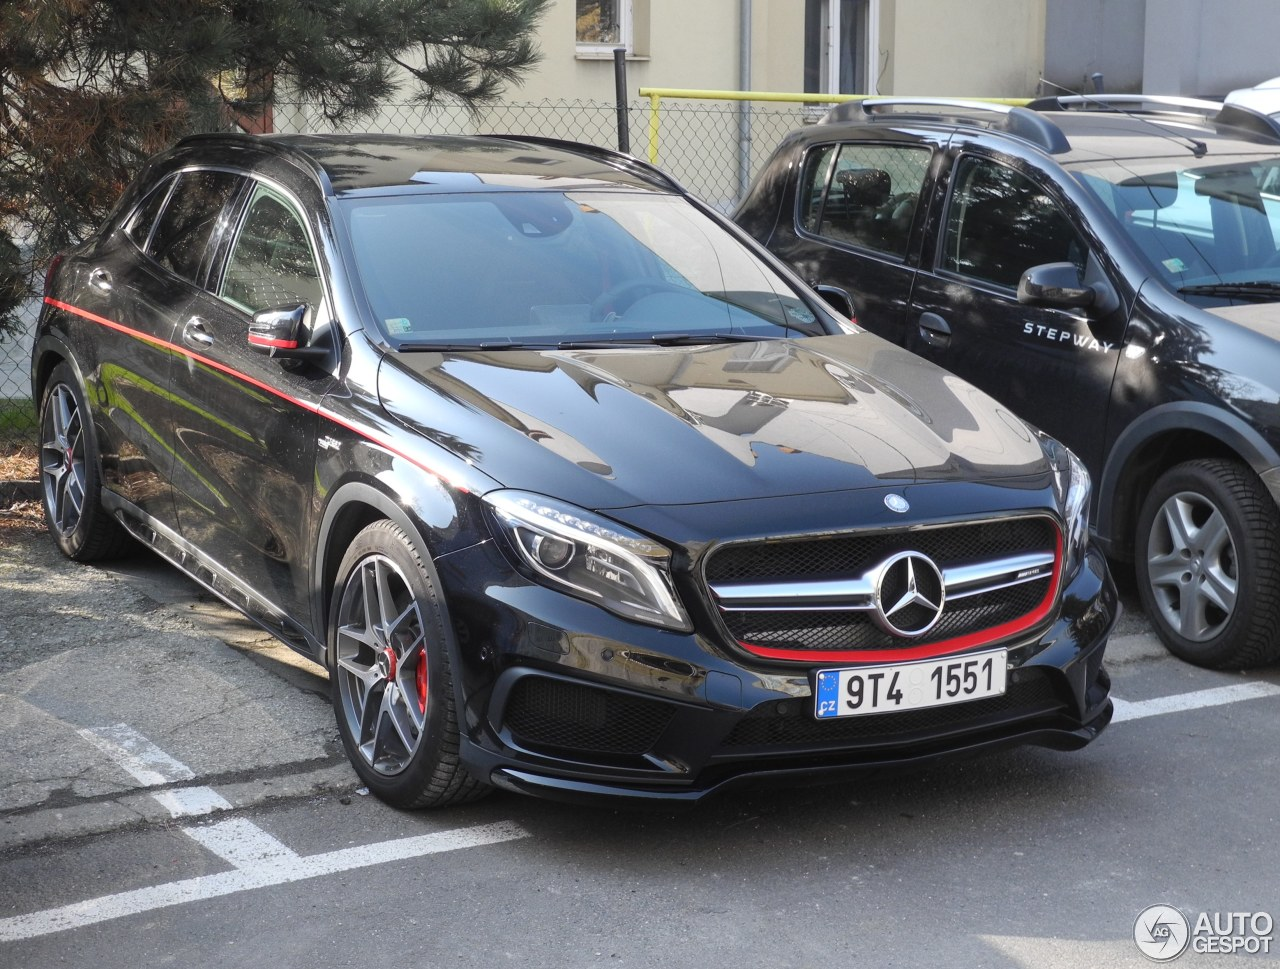 Mercedes benz gla 45 amg edition 1 19 march 2015 for Mercedes benz gla 45 amg for sale